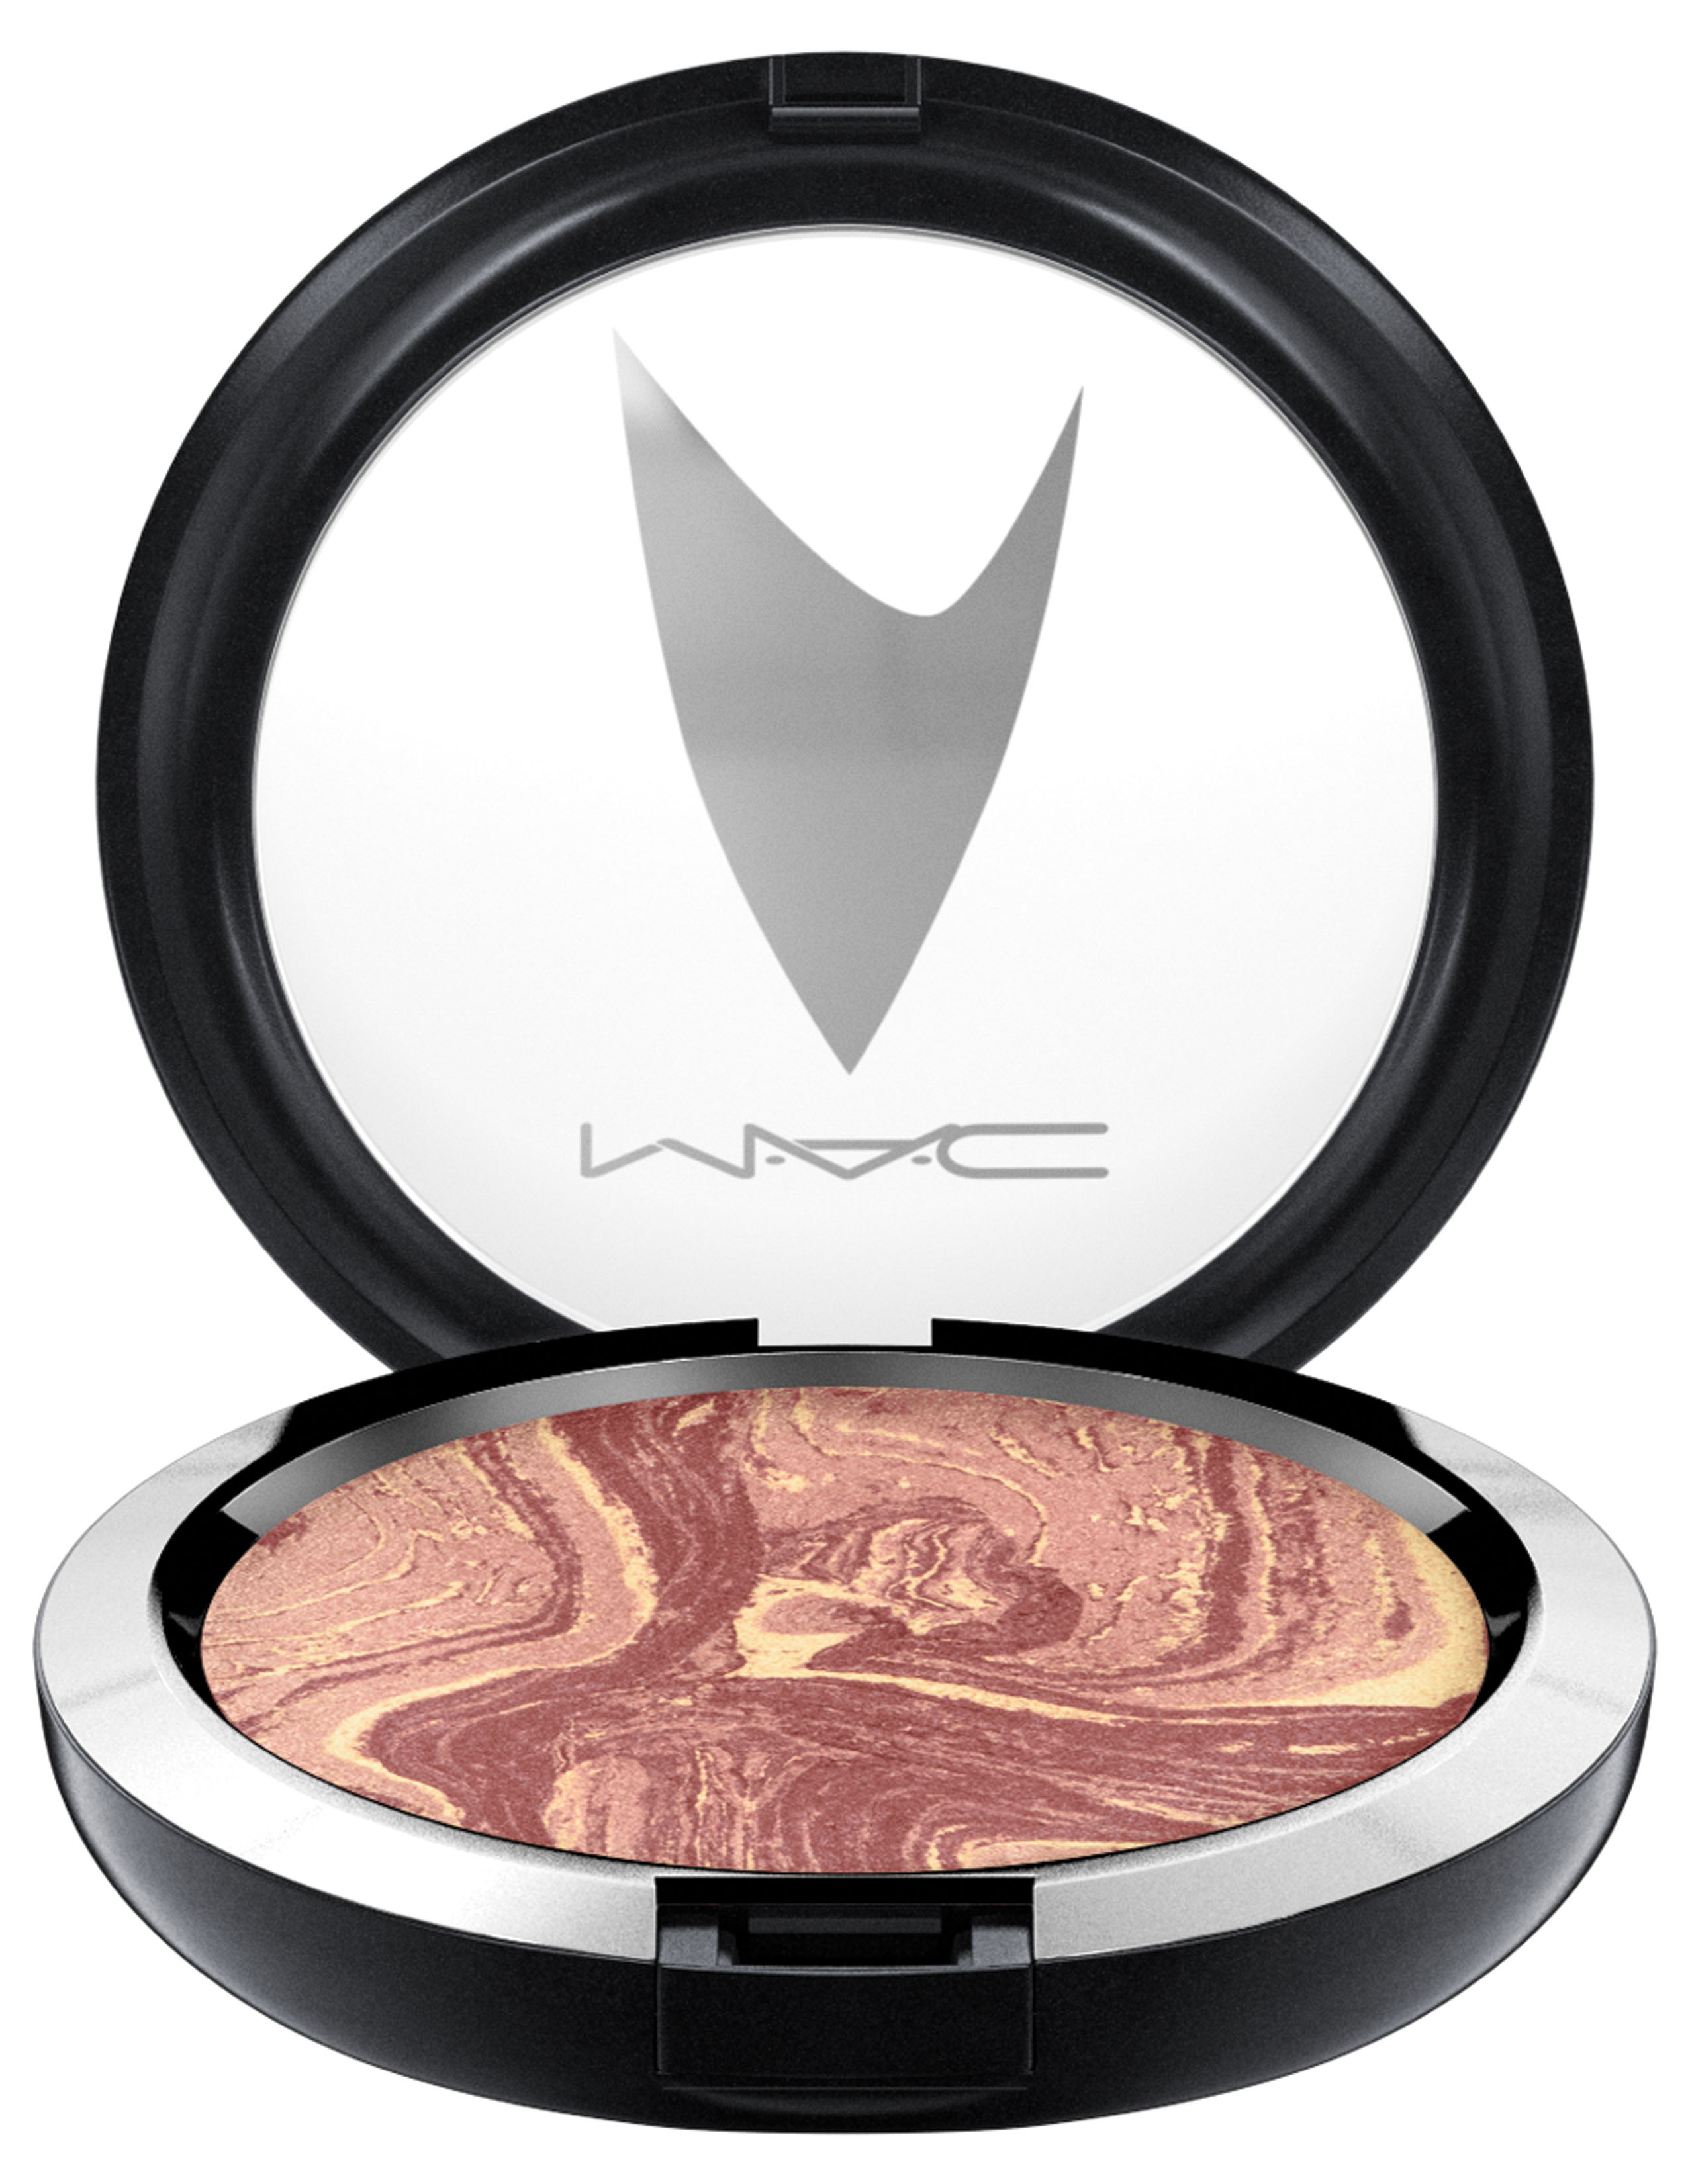 MAC_StarTrek_FacePowder_HighlyIllogical_300dpiCMYK_1